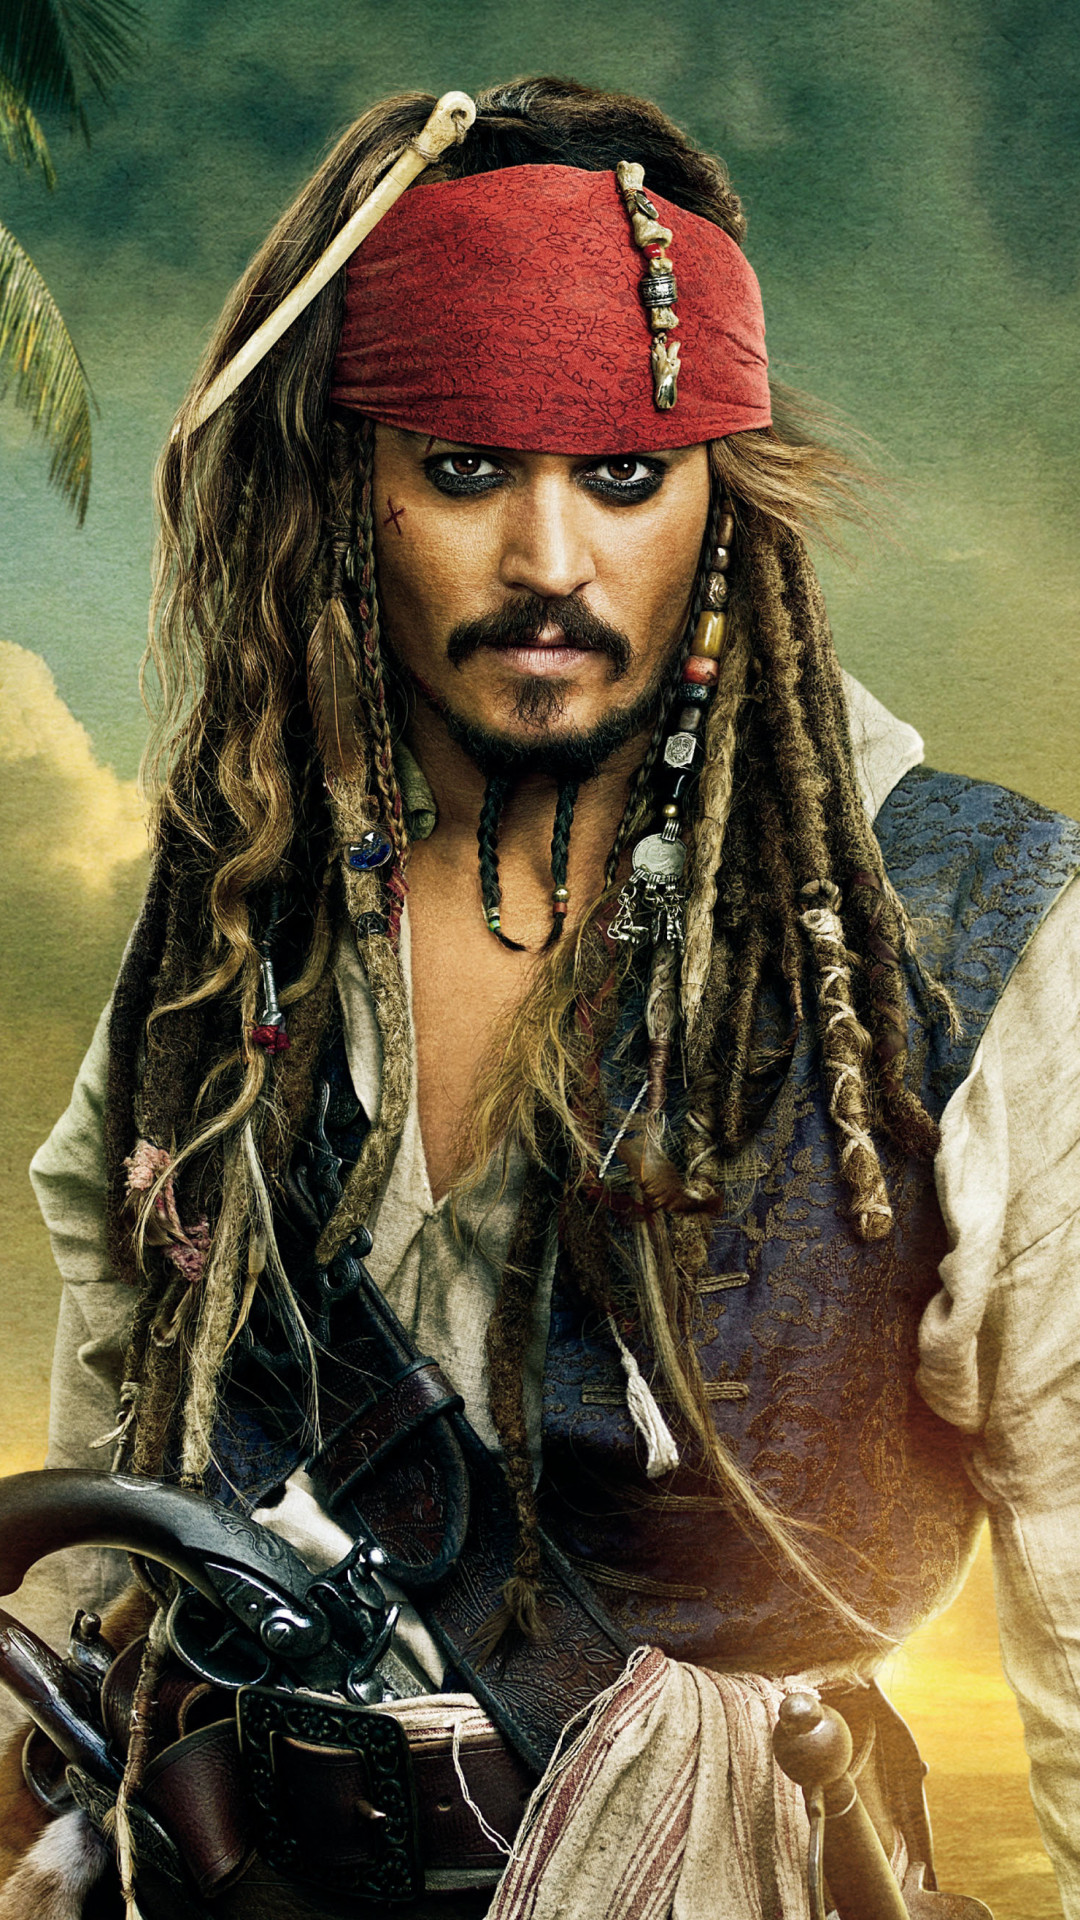 Jack sparrow wallpaper wallpapertag - Pirates of the caribbean images hd ...